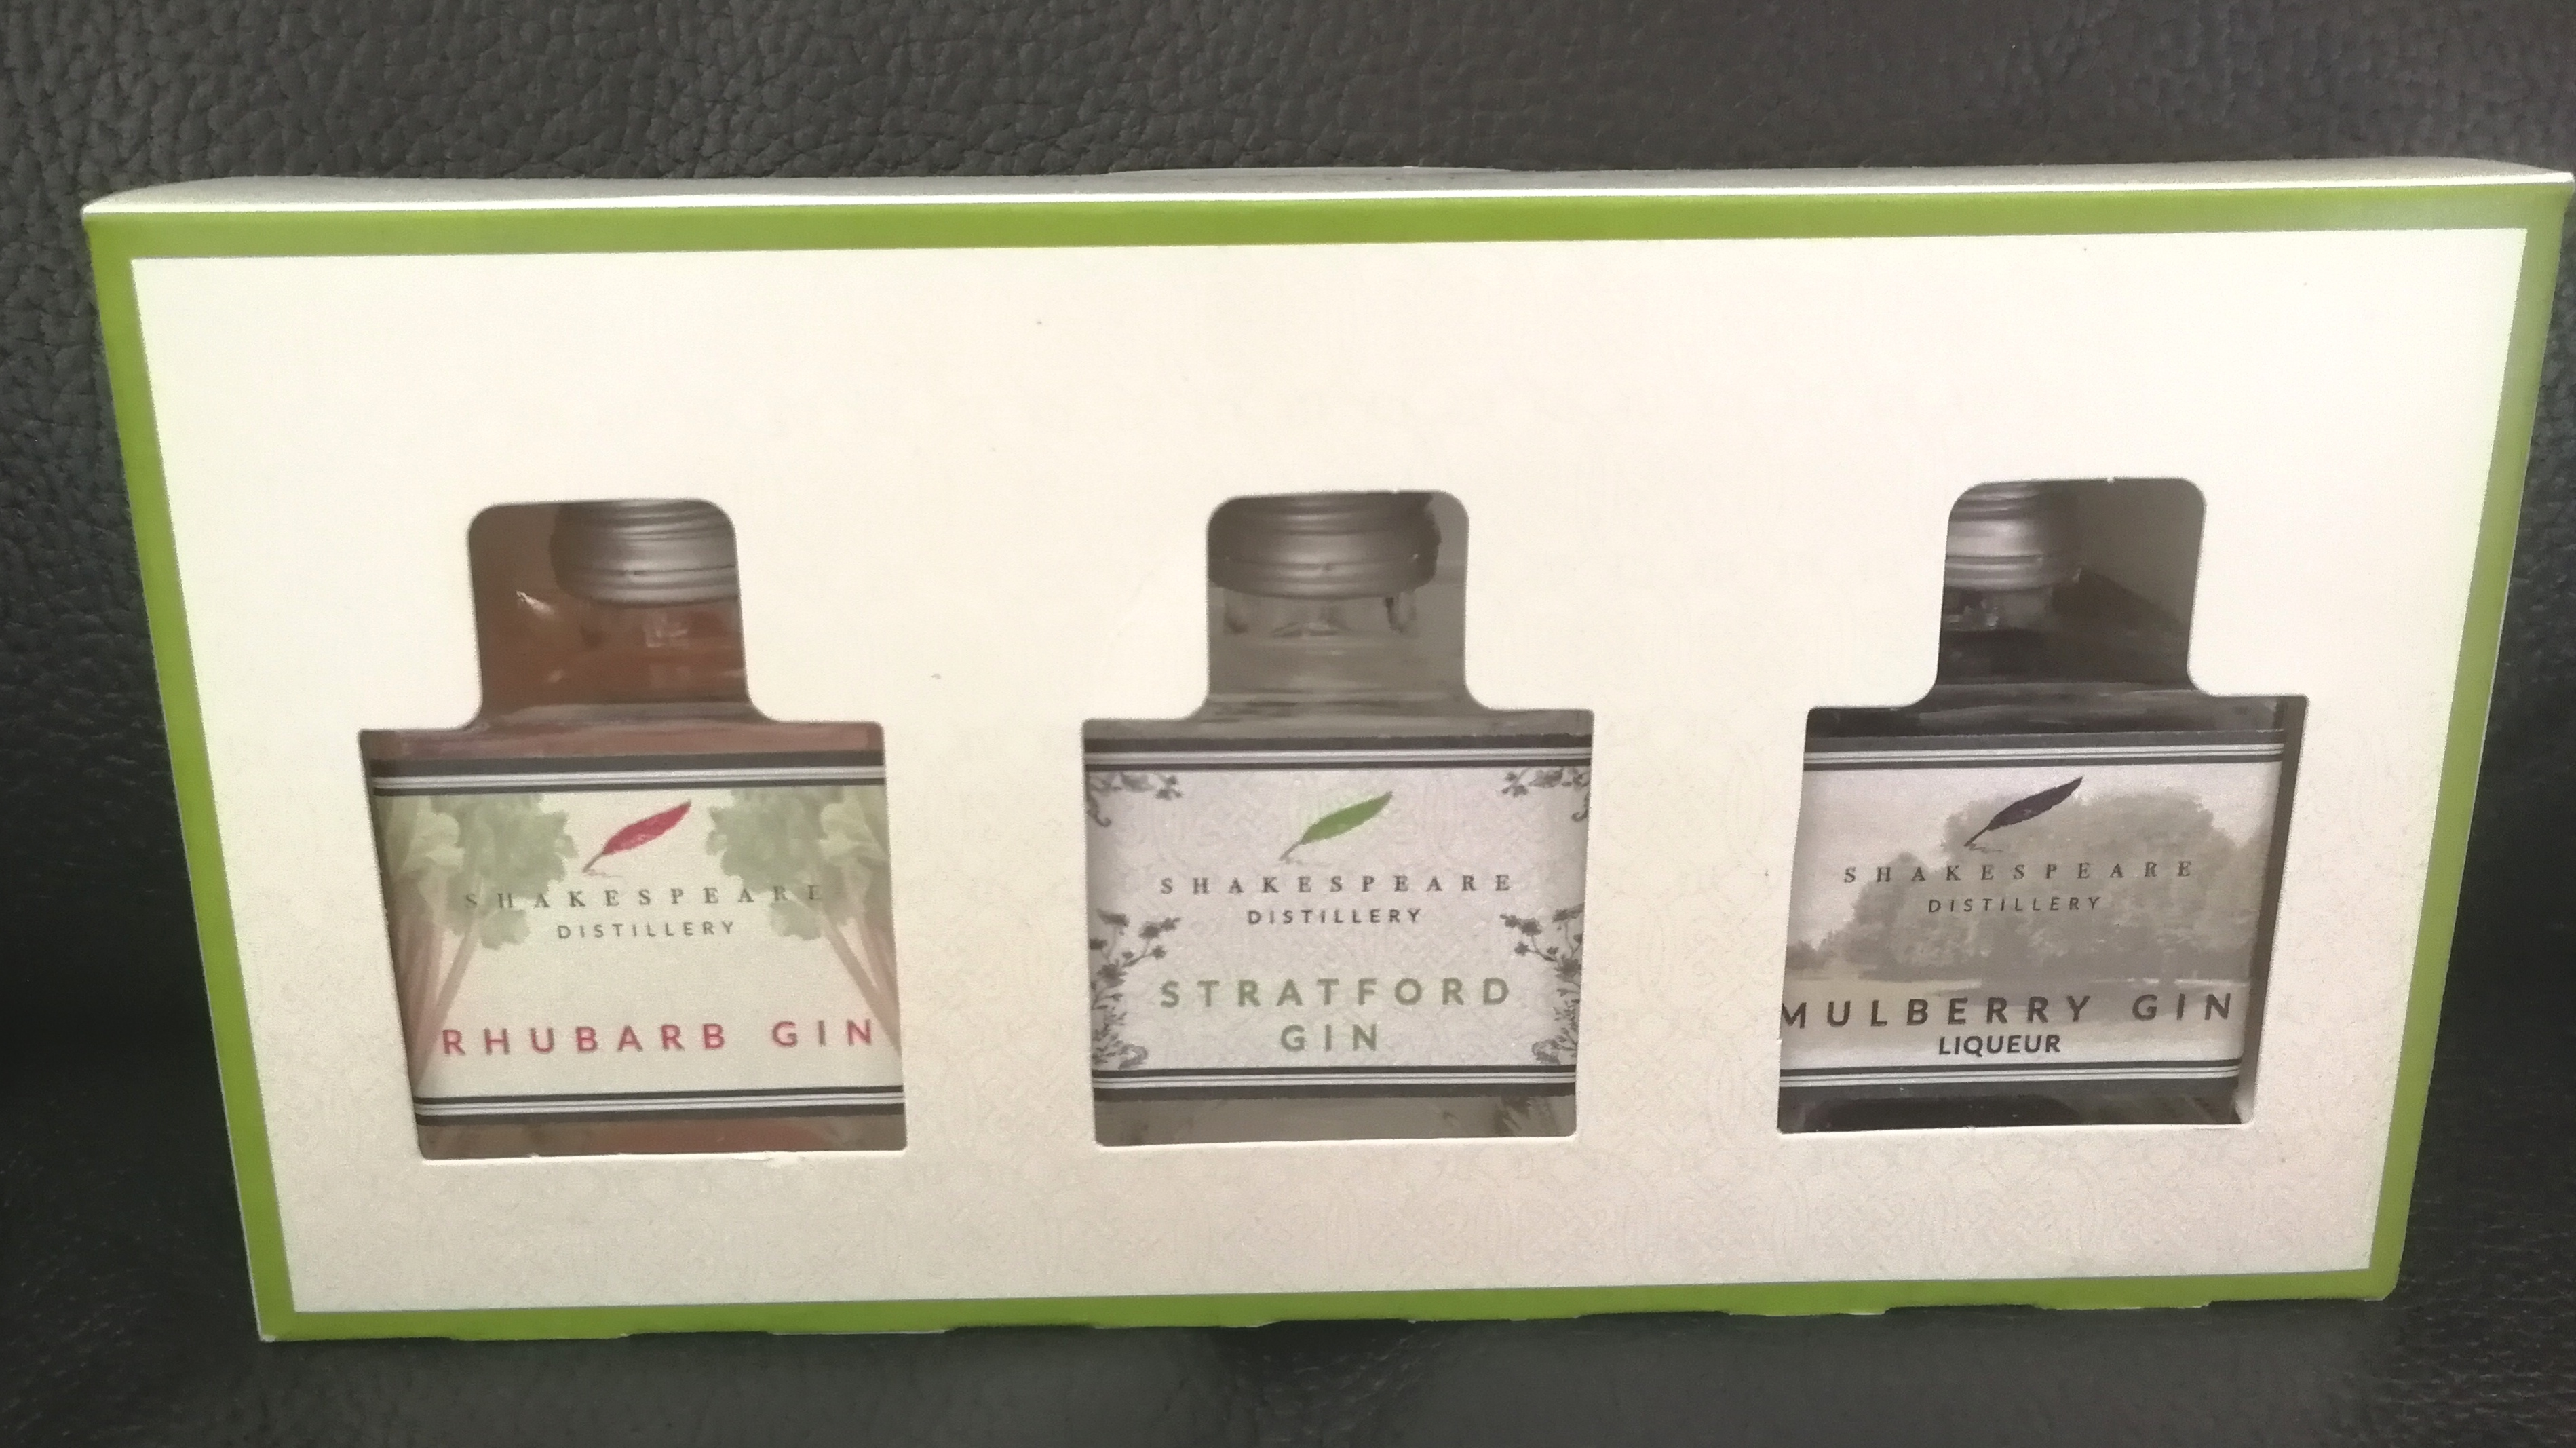 Shakespeare Distillery Three Gin Gift Set